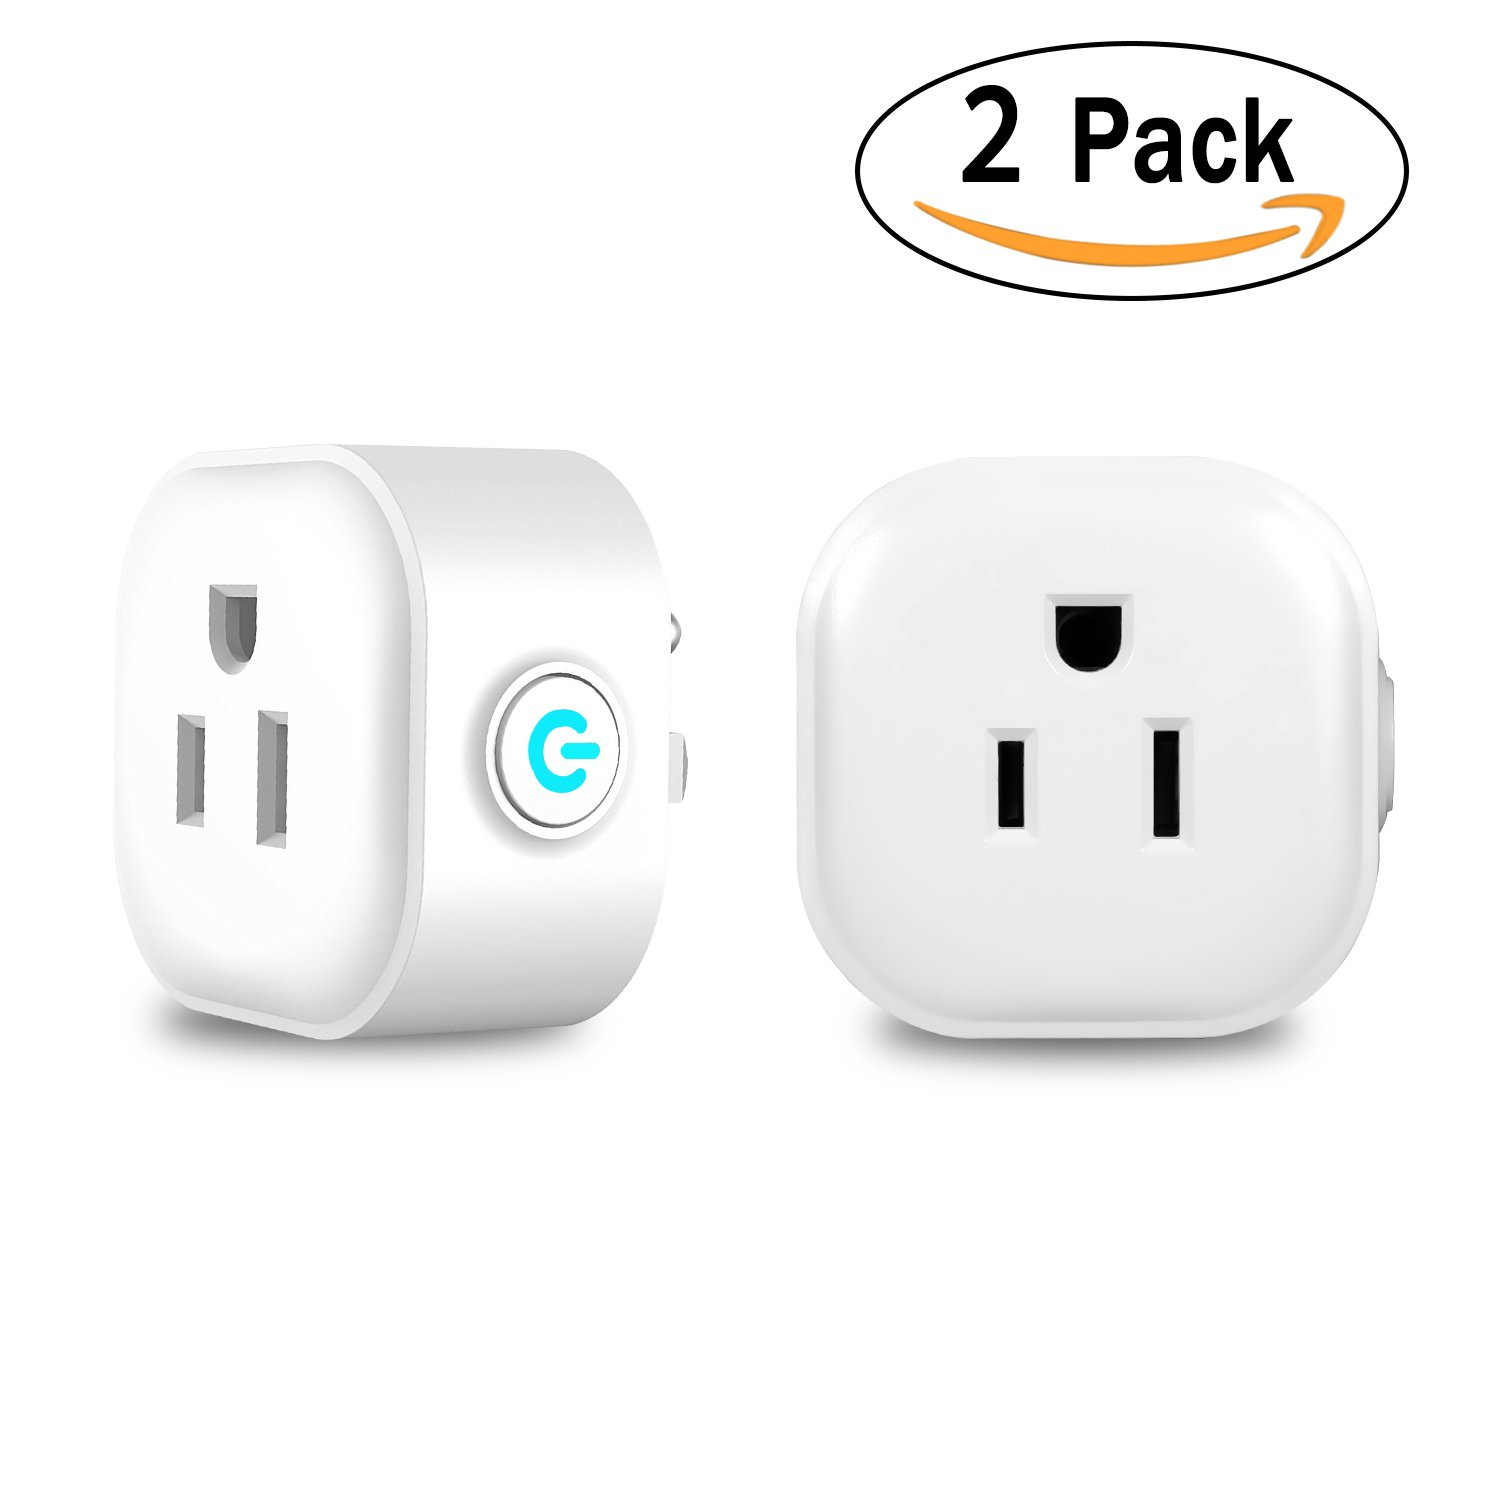 Wi-Fi Smart Plug, Mini Outlets Smart Sockets Works with Amazon Alexa and Google Assistant, No Hub Required, Remote Control Your Devices from Anywhere-by KaiBodi 2 Pack